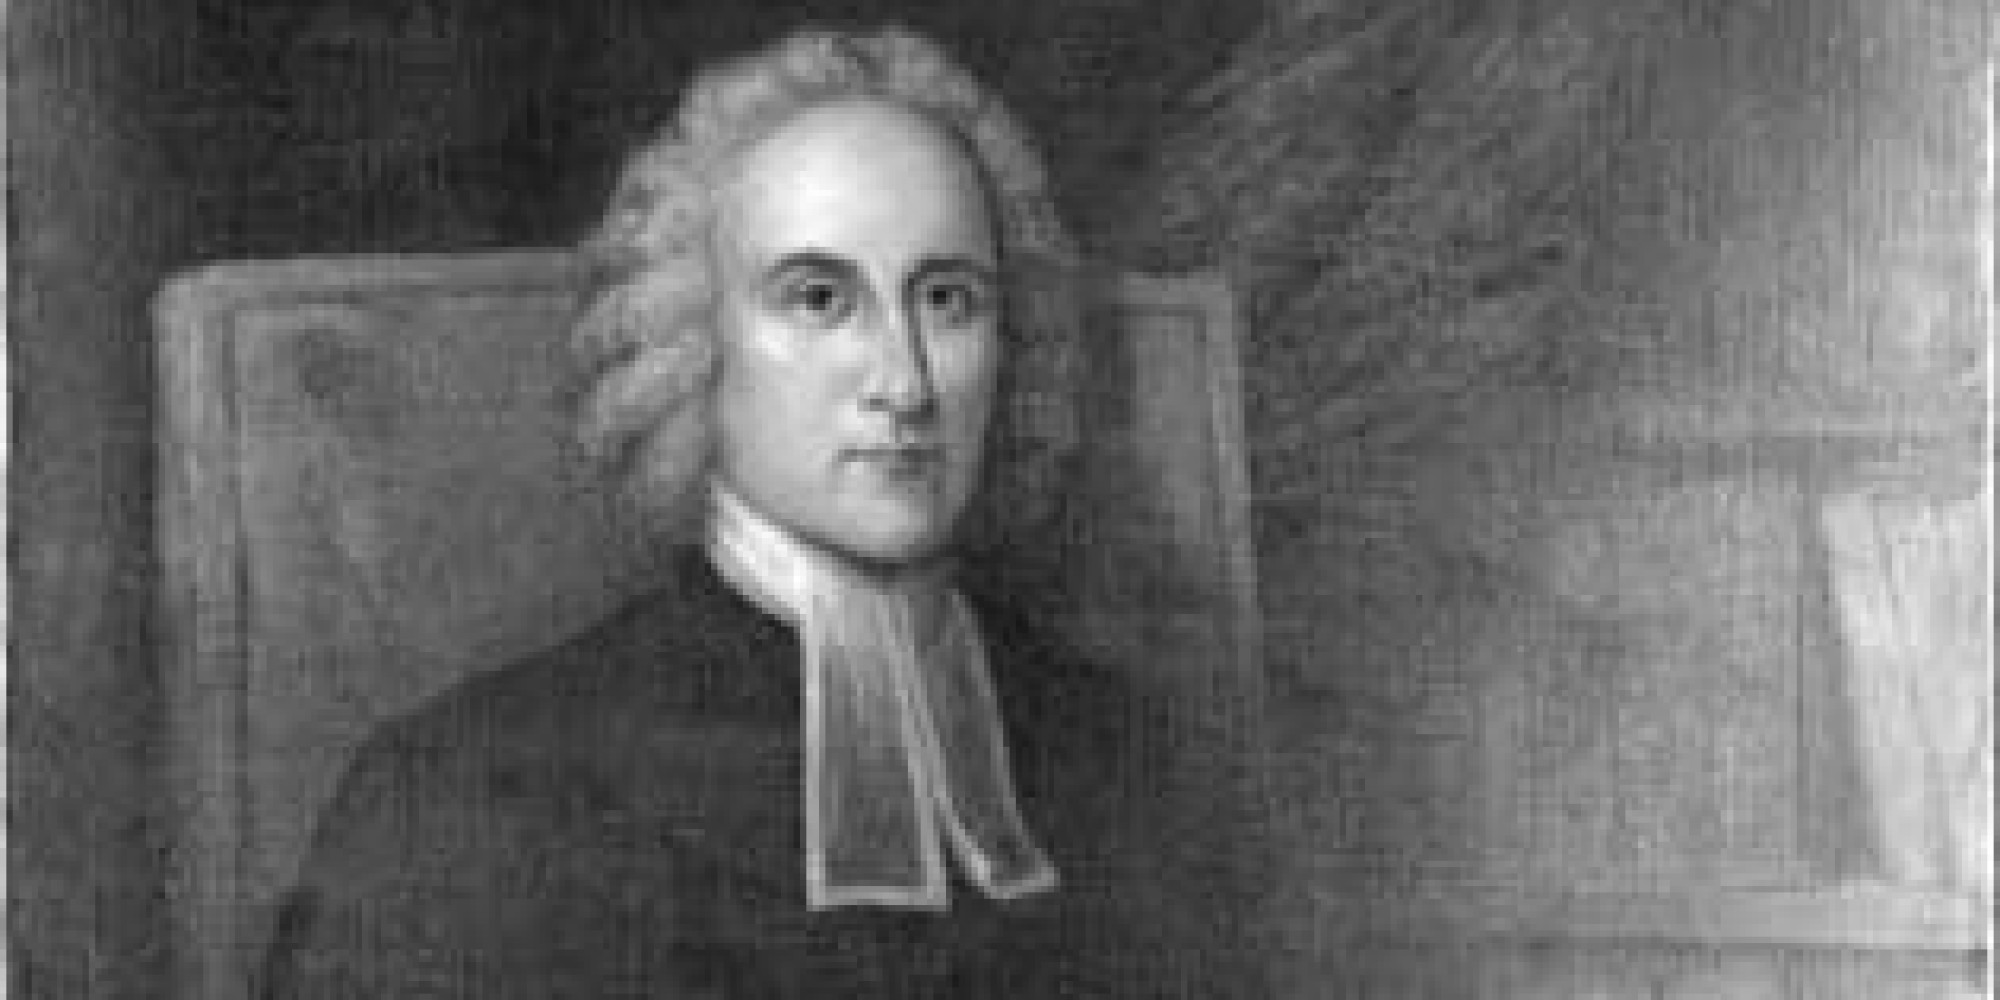 jonathon edwards Introduction jonathan edwards is generally considered the greatest of the american puritan theologians and philosophers he was born in 1703, a grandson of the famous congregationalist preacher solomon stoddard.